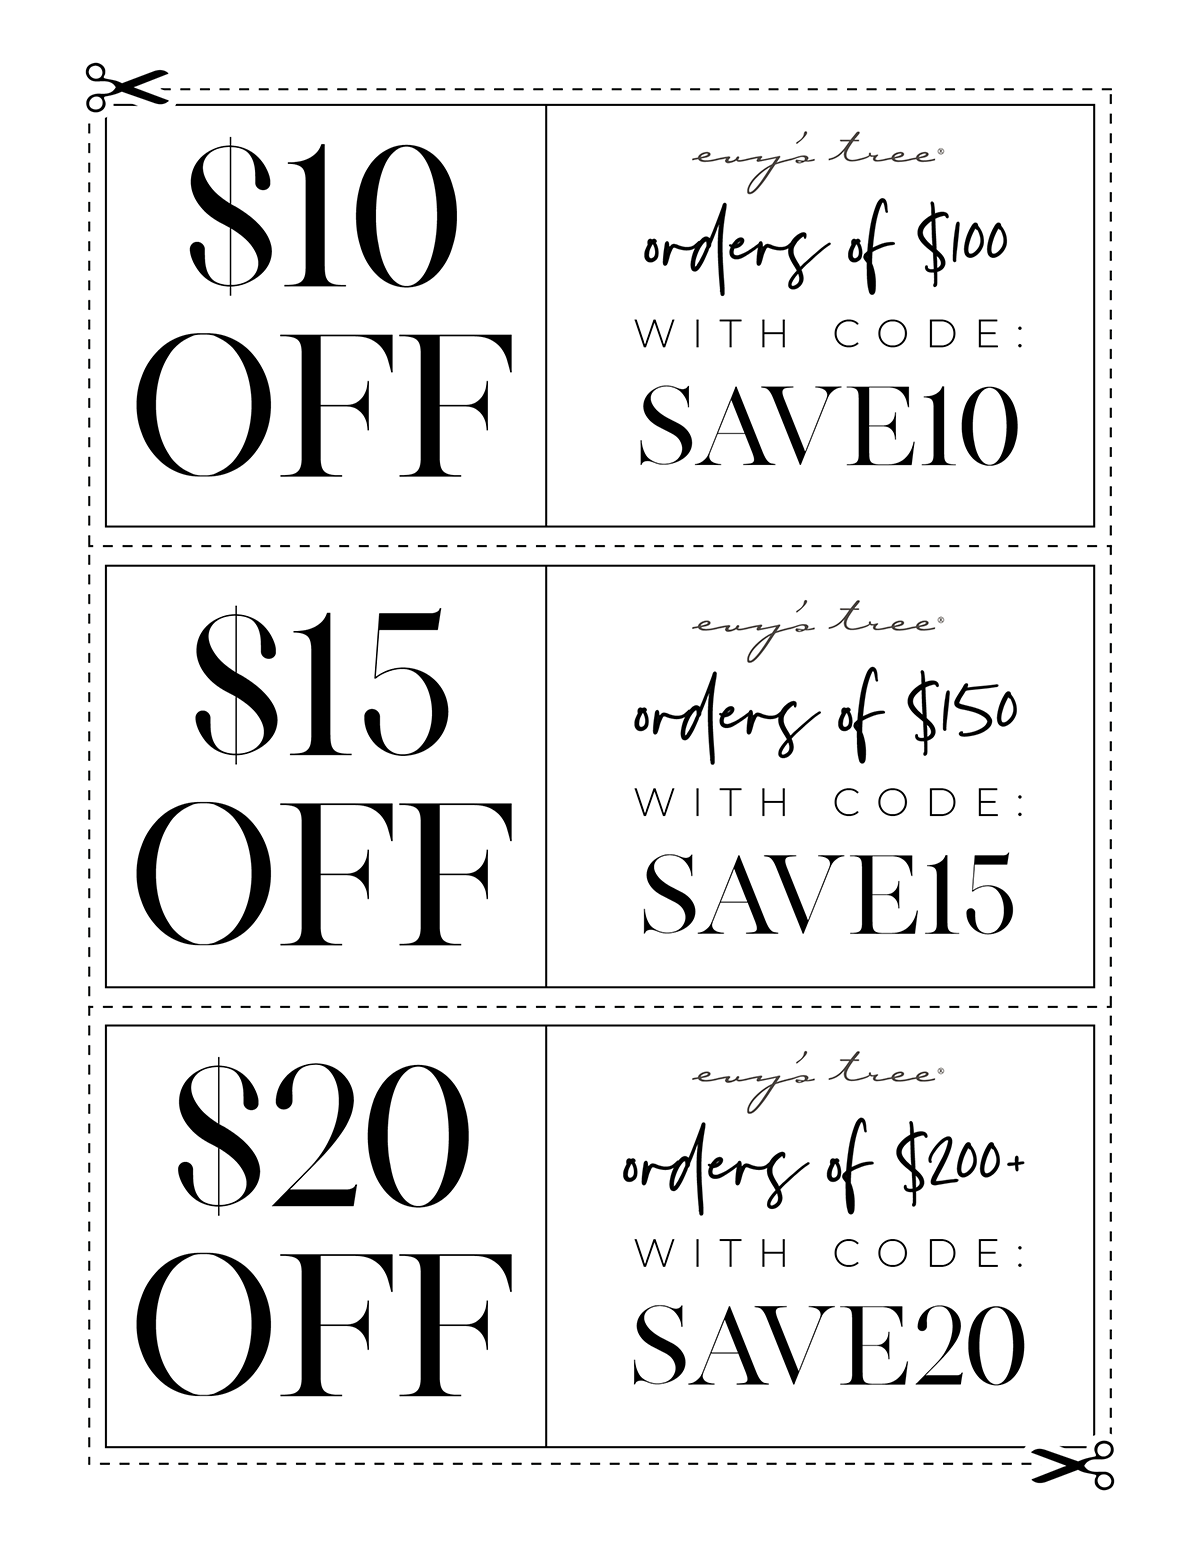 $10 off $100 spent with code SAVE10, $15 off $150 spent with code SAVE15, $20 off $200+ spent with code SAVE20